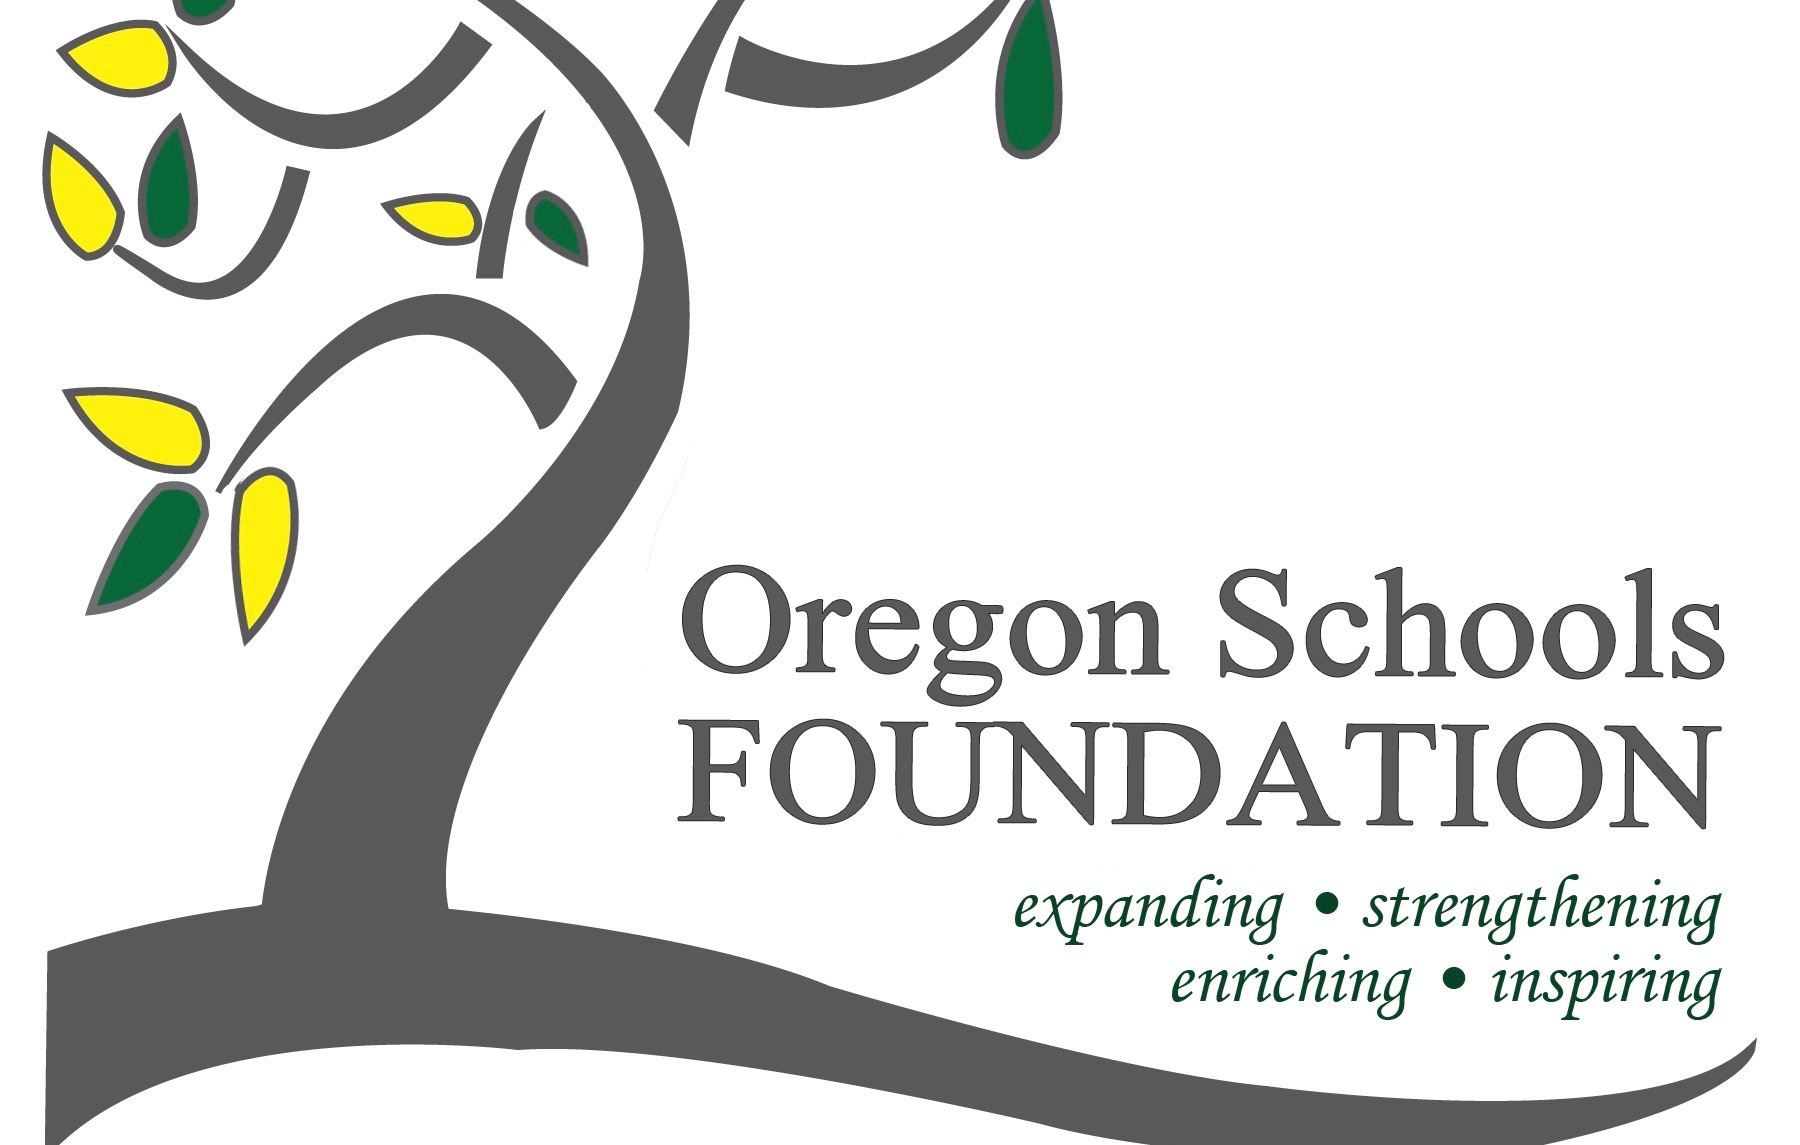 Oregon Schools Foundation Information